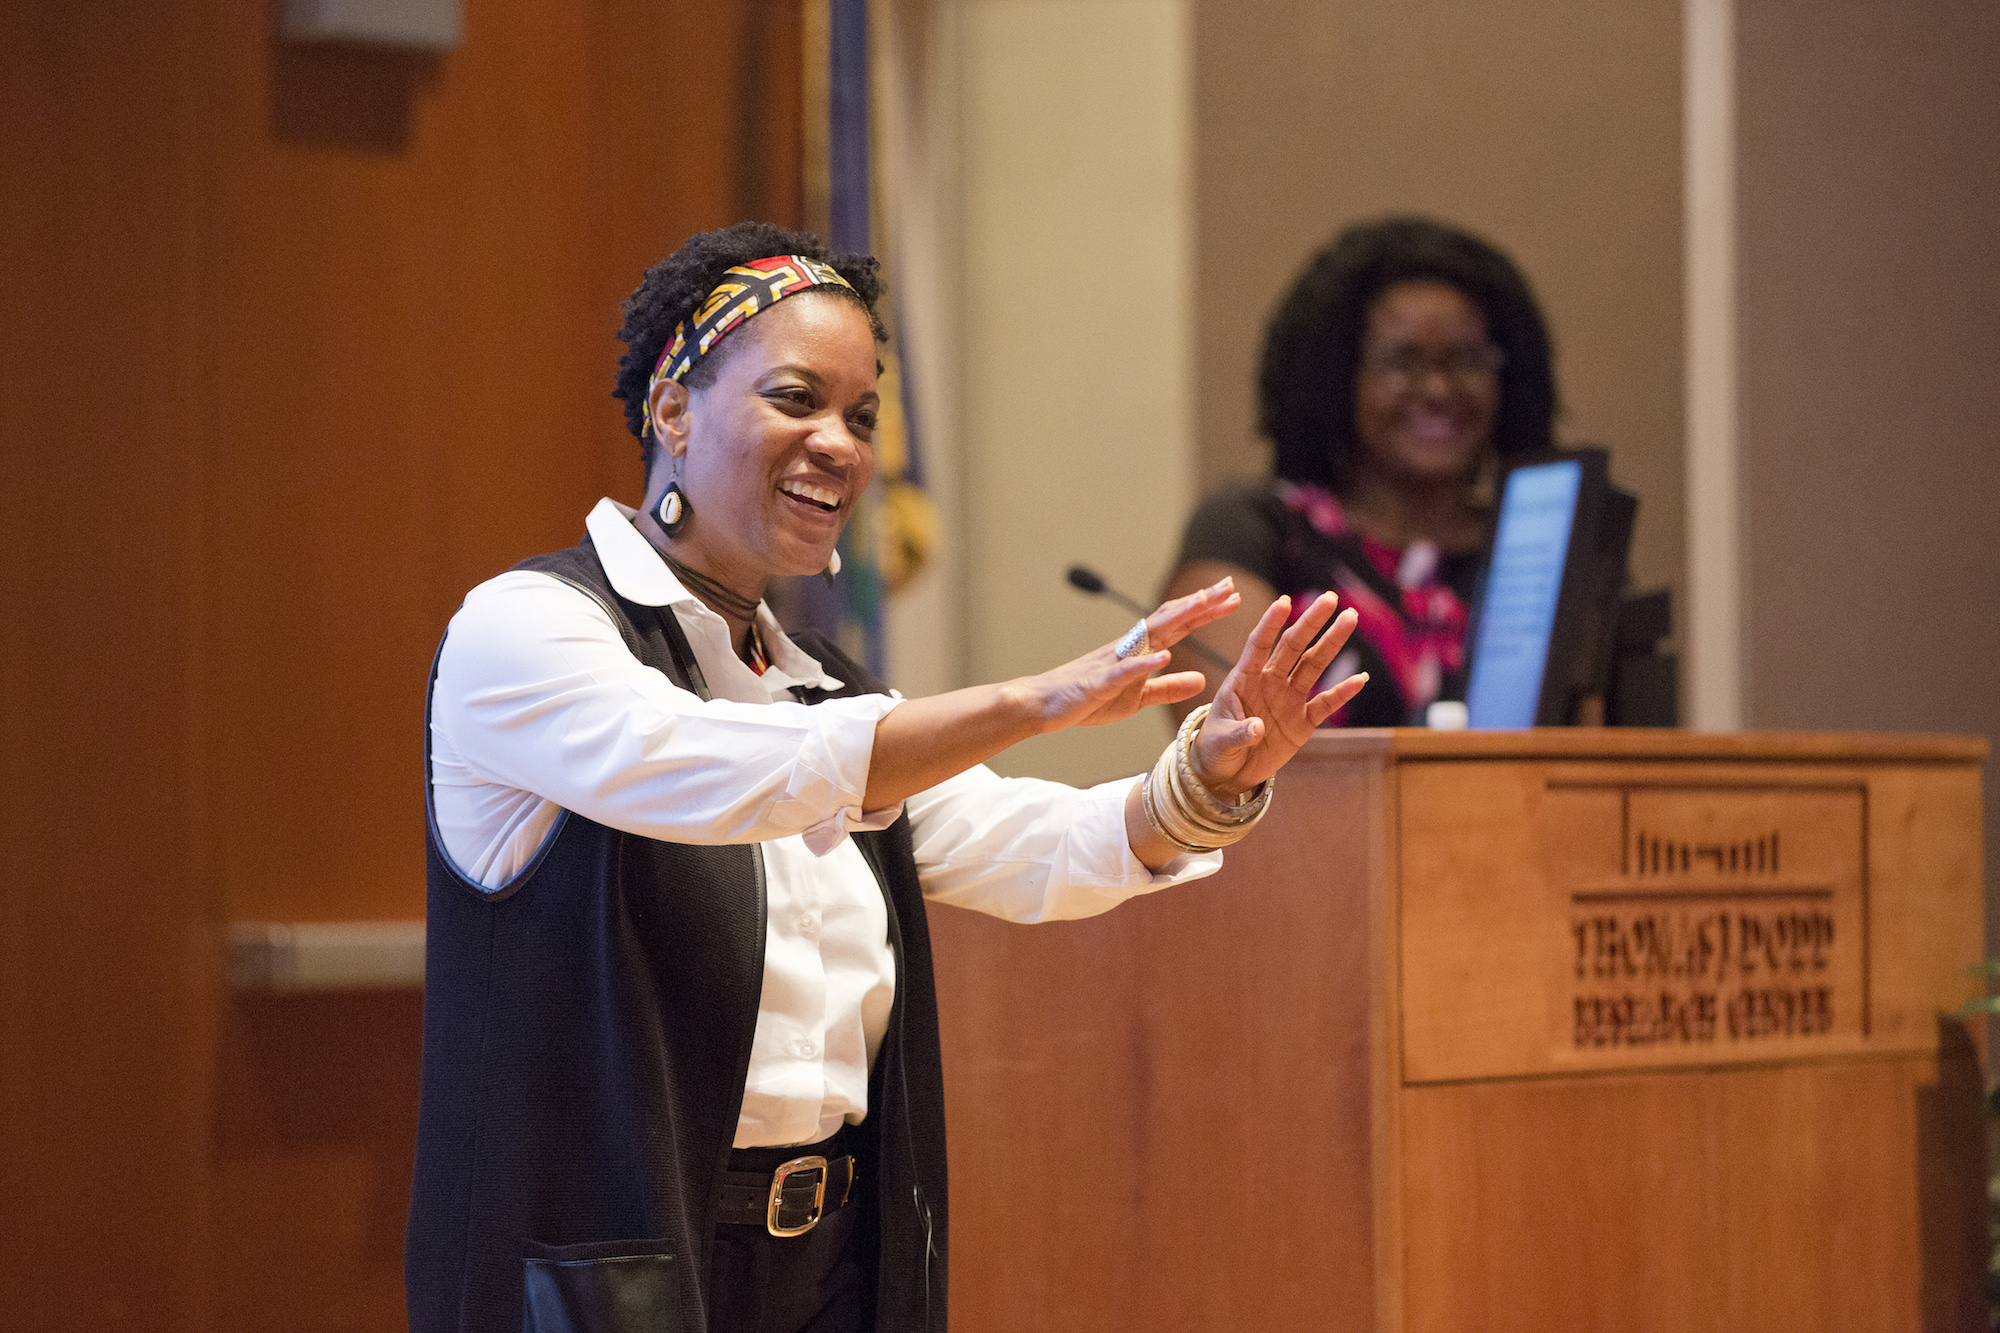 Julia Jordan-Zachery '97 Ph.D., Director of Black Studies at Providence College, speaks at the launch event of the Collaborative to Advance Equity Through Research on Women and Girls of Color on 9.28.2016. (Bri Diaz/UConn Photo)